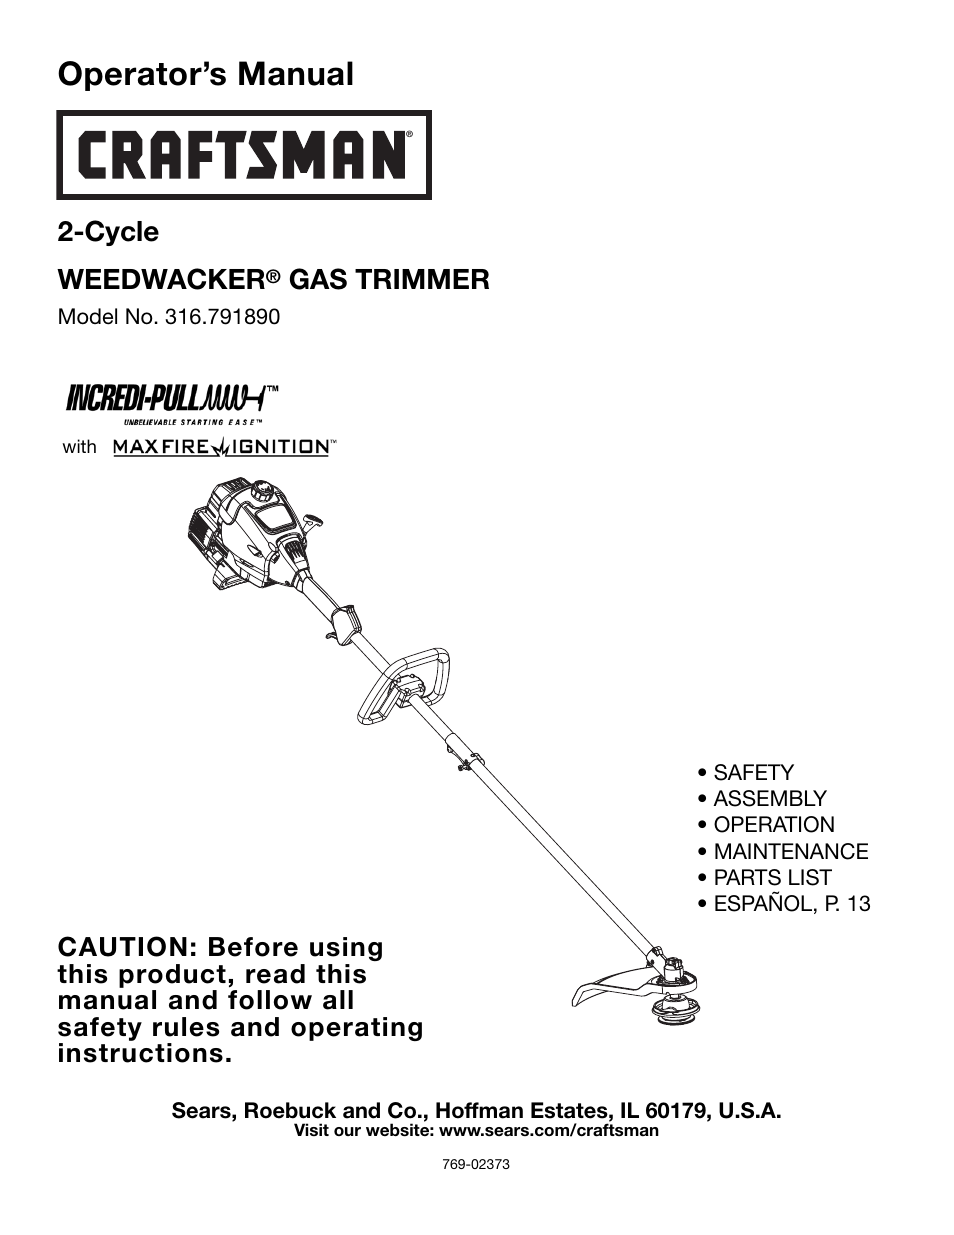 craftsman 316 79189 user manual 28 pages rh manualsdir com craftsman weedwacker gas trimmer manual craftsman 27cc gas trimmer manual